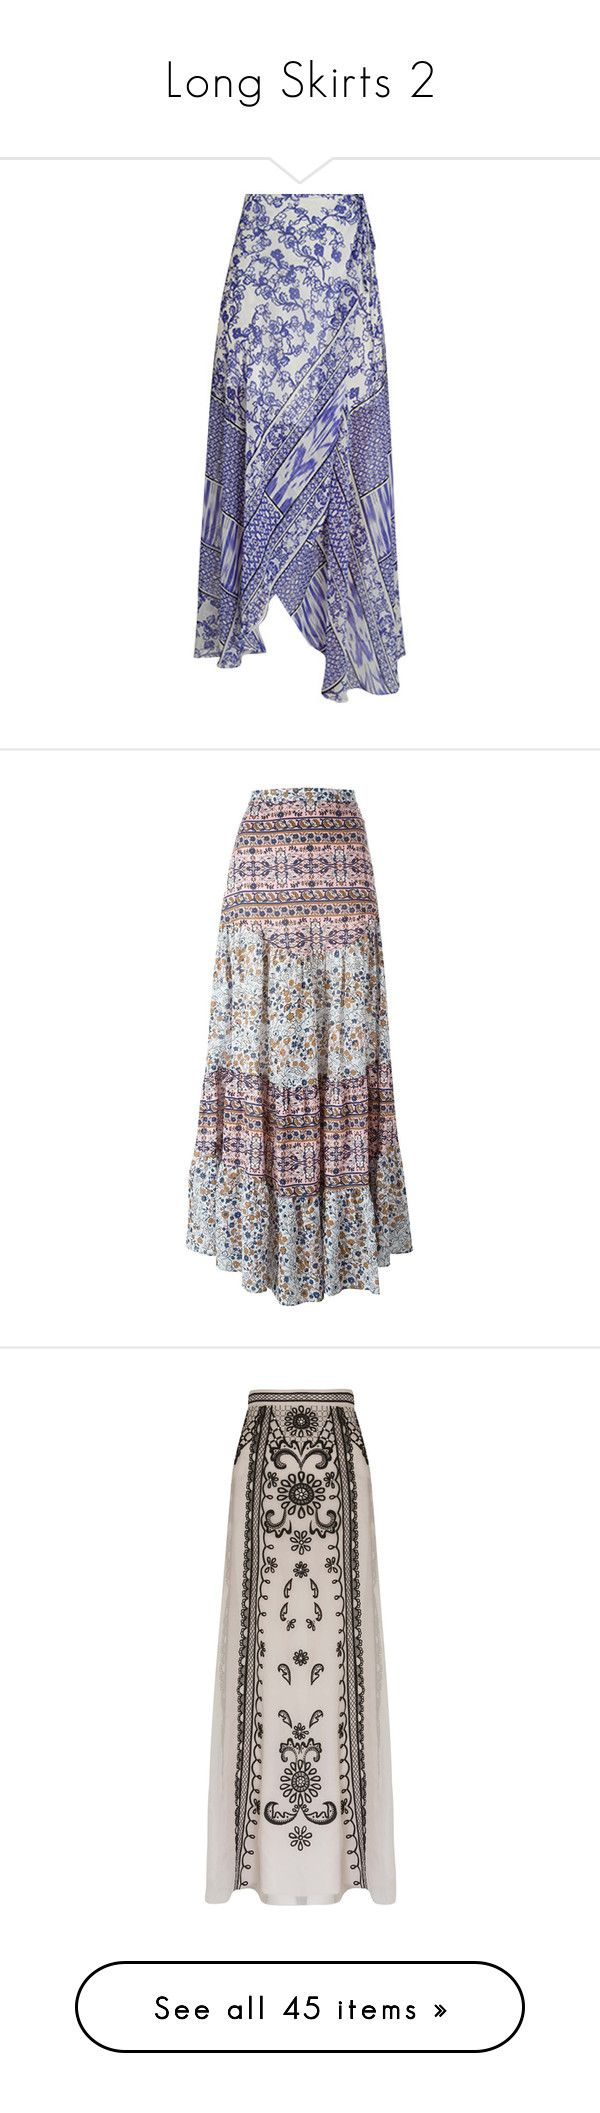 """""""Long Skirts 2"""" by thesassystewart on Polyvore featuring skirts, wrap skirt, blue knee length skirt, blue wrap skirt, blue skirt, long grey skirt, cotton maxi skirt, high waisted maxi skirt, long maxi skirts and long pleated maxi skirt"""